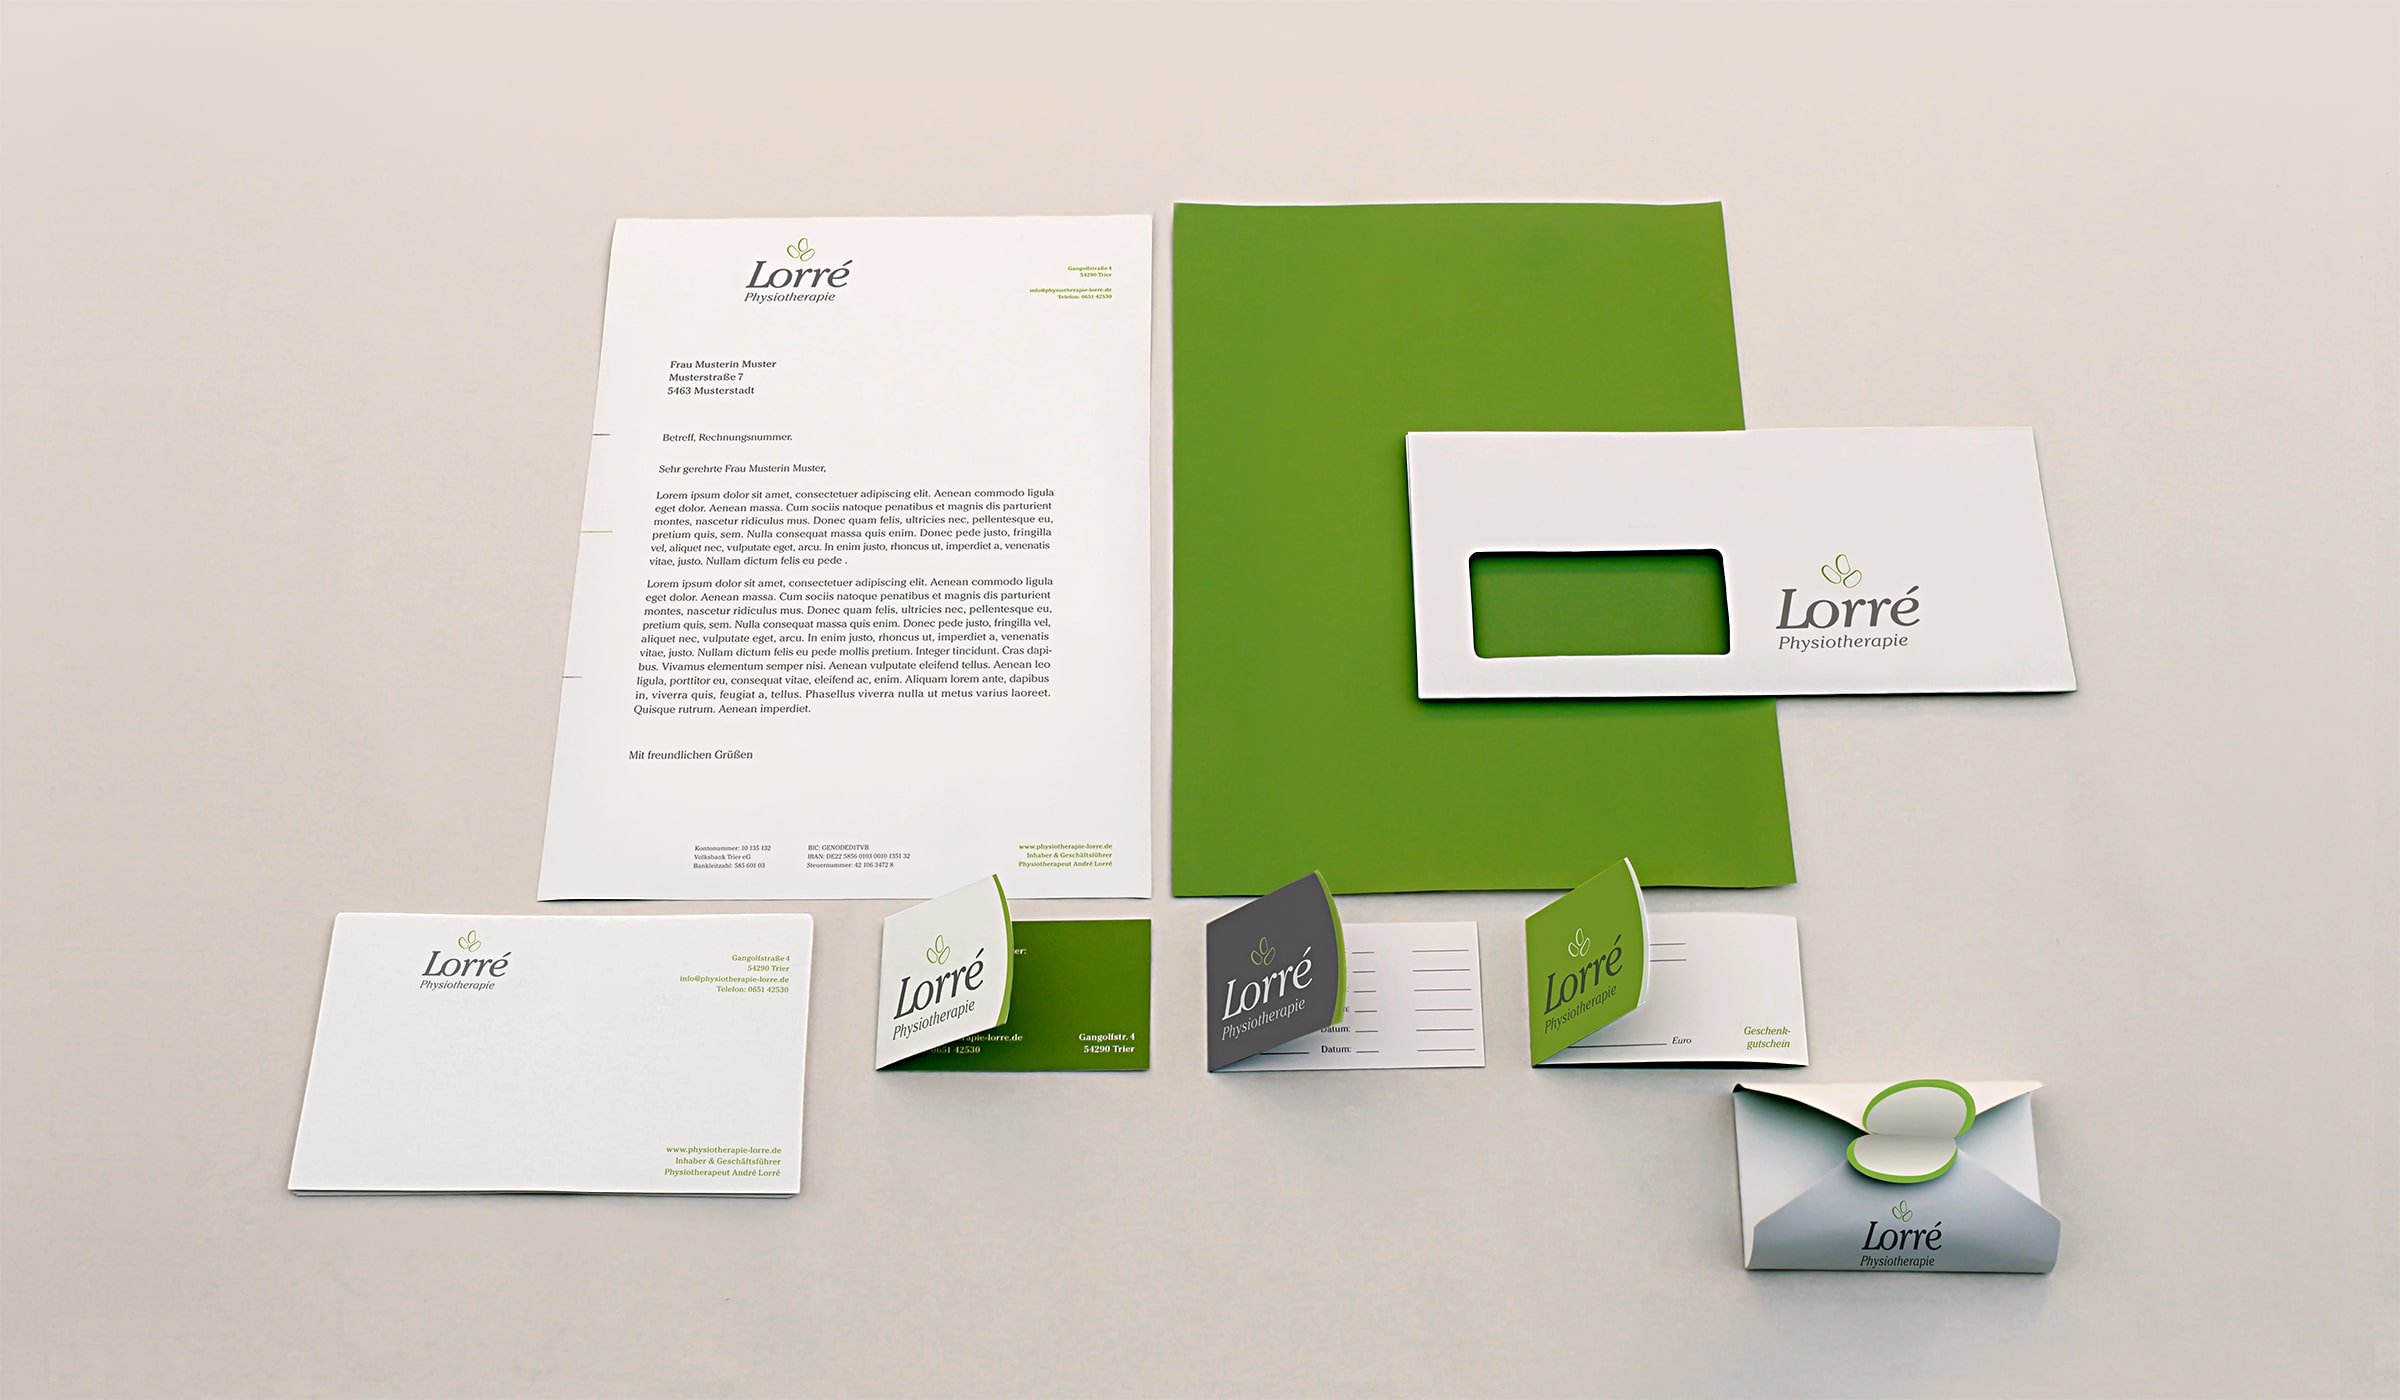 Logodesign/ Logogalerie/ Corporate Identity/ Konzeptarbeit ~ Corporate Design/ Visitenkarte/ Physiotherapie Lorré Trier/ Branding/ Brand Design/ Logo/ KERSTIN MICHELS – DESIGN/ Designagentur/ Werbeagentur/Grafikdesign/ Kommunikationsdesign/ Hermeskeil/ Hochwald/ Rheinland-Pfalz/ Werbung/ Design